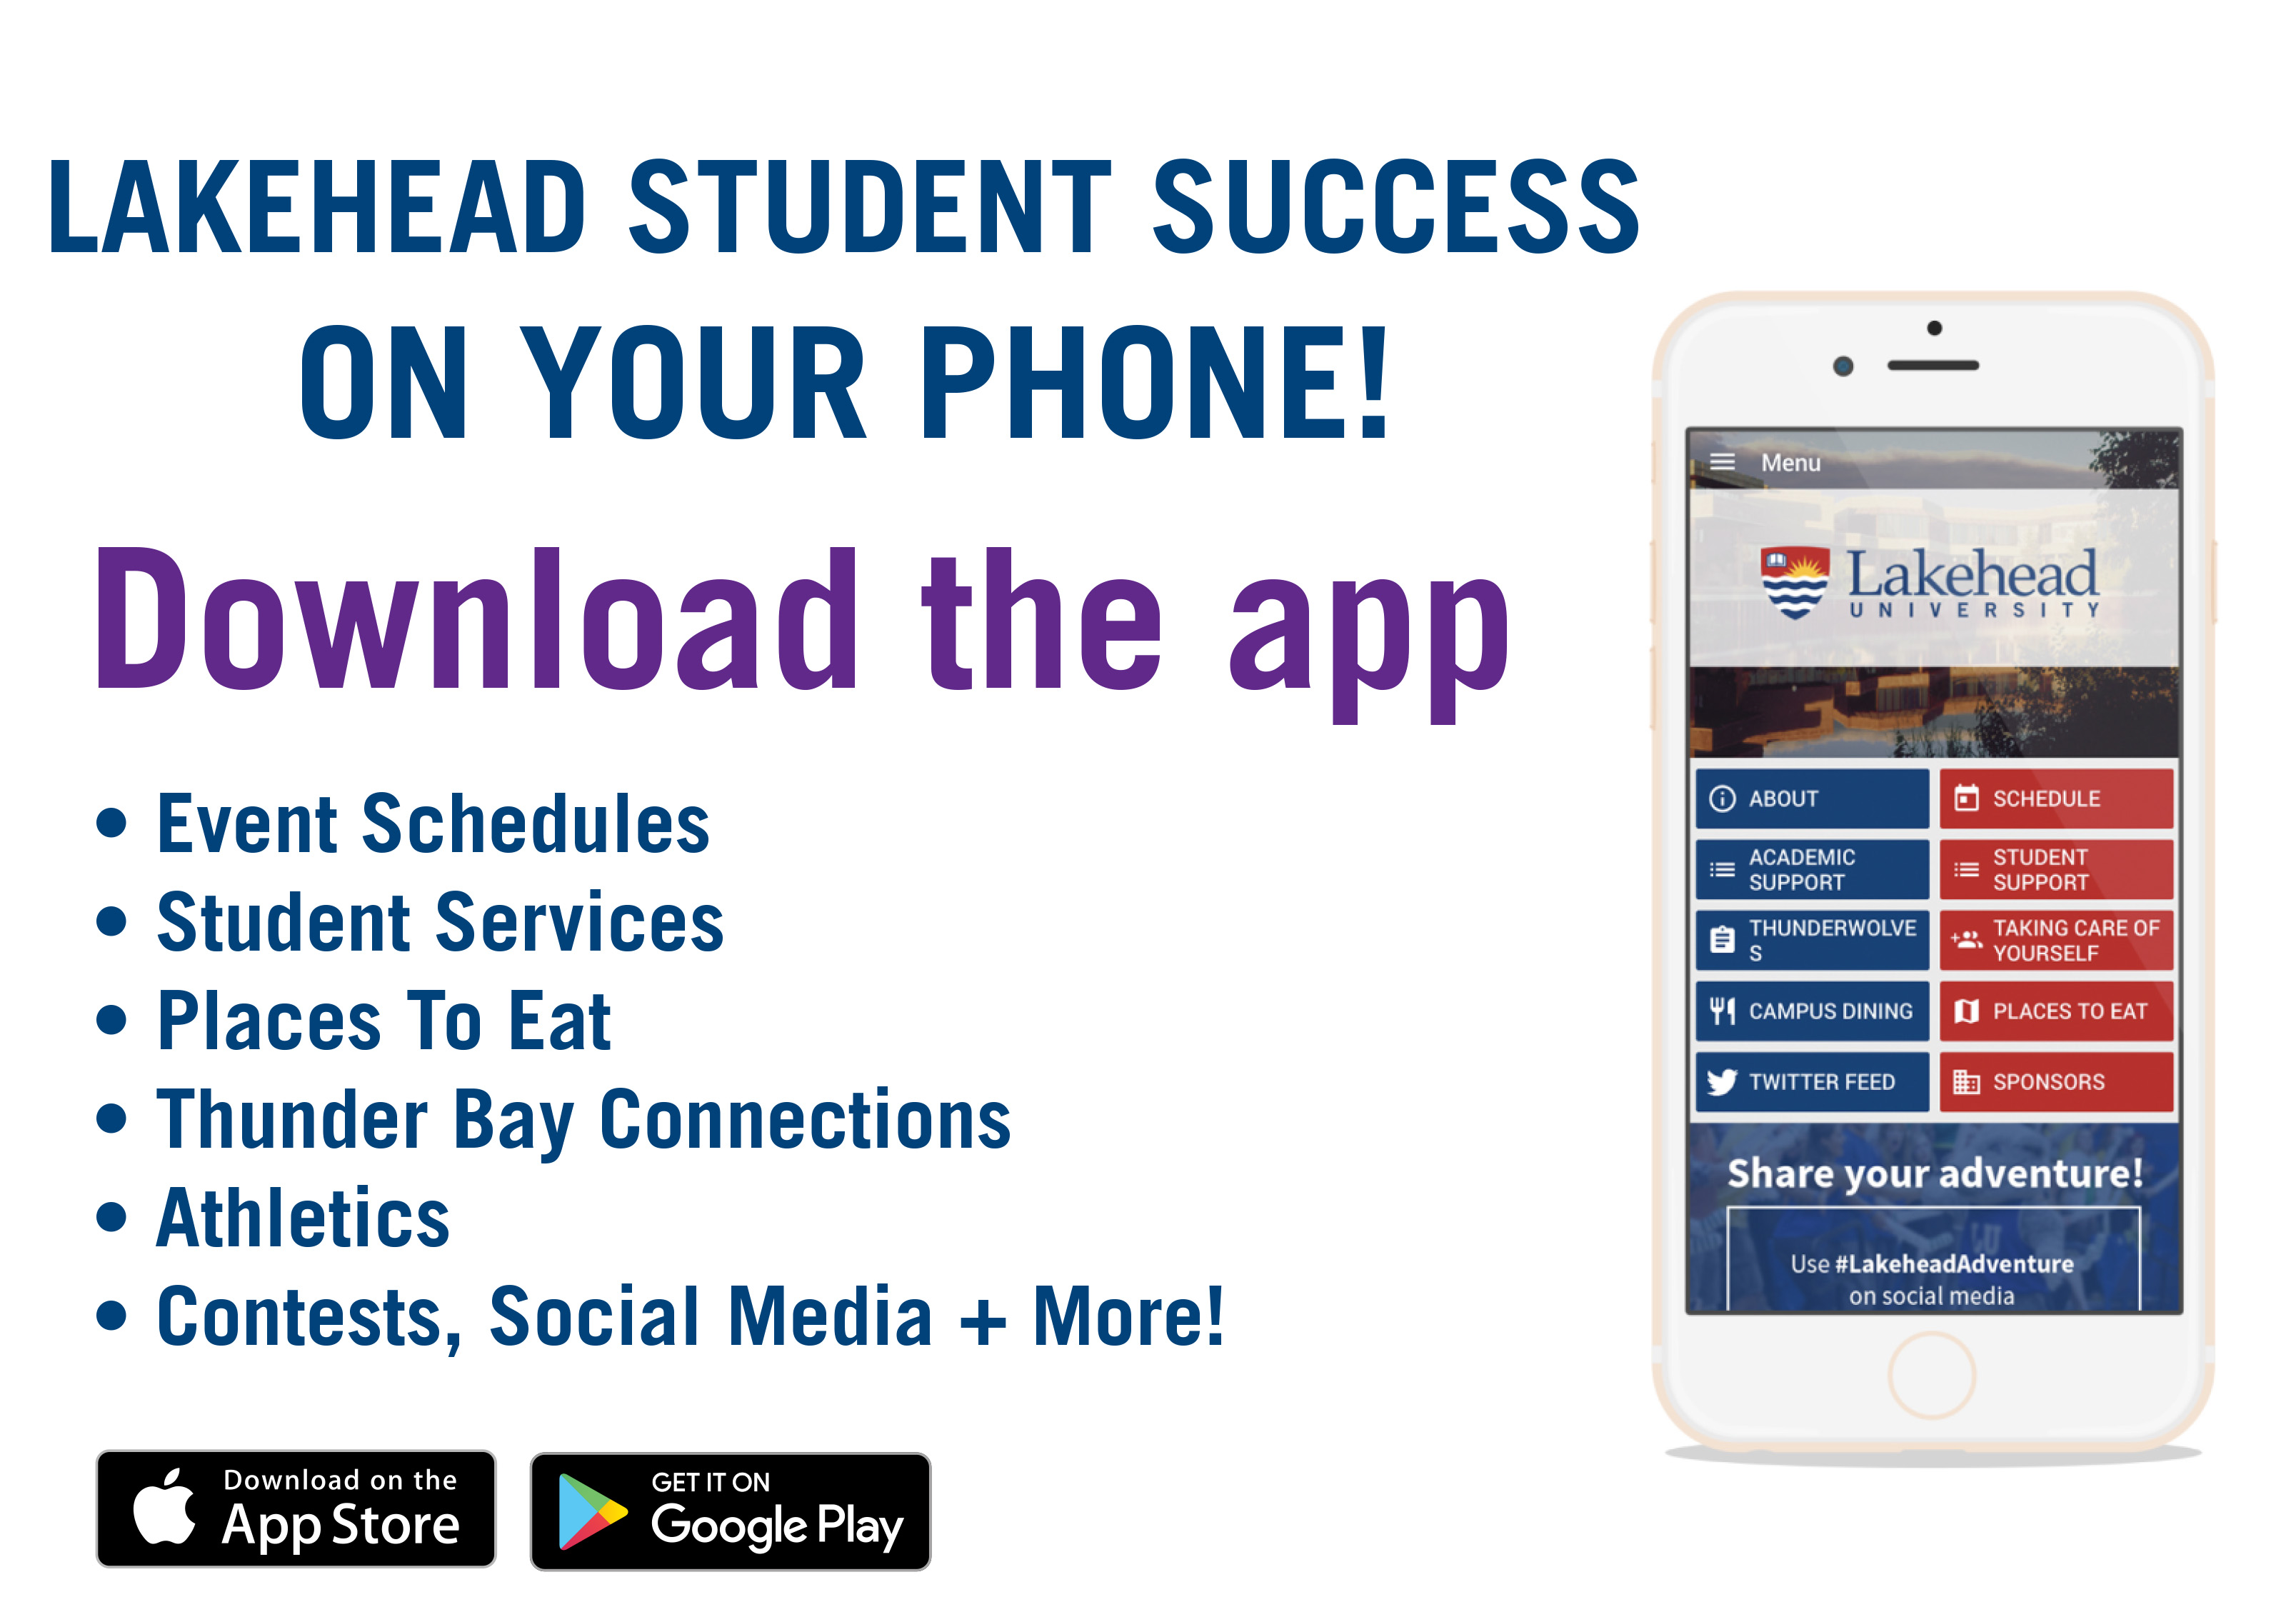 Lakehead Student Success App Promotion Poster